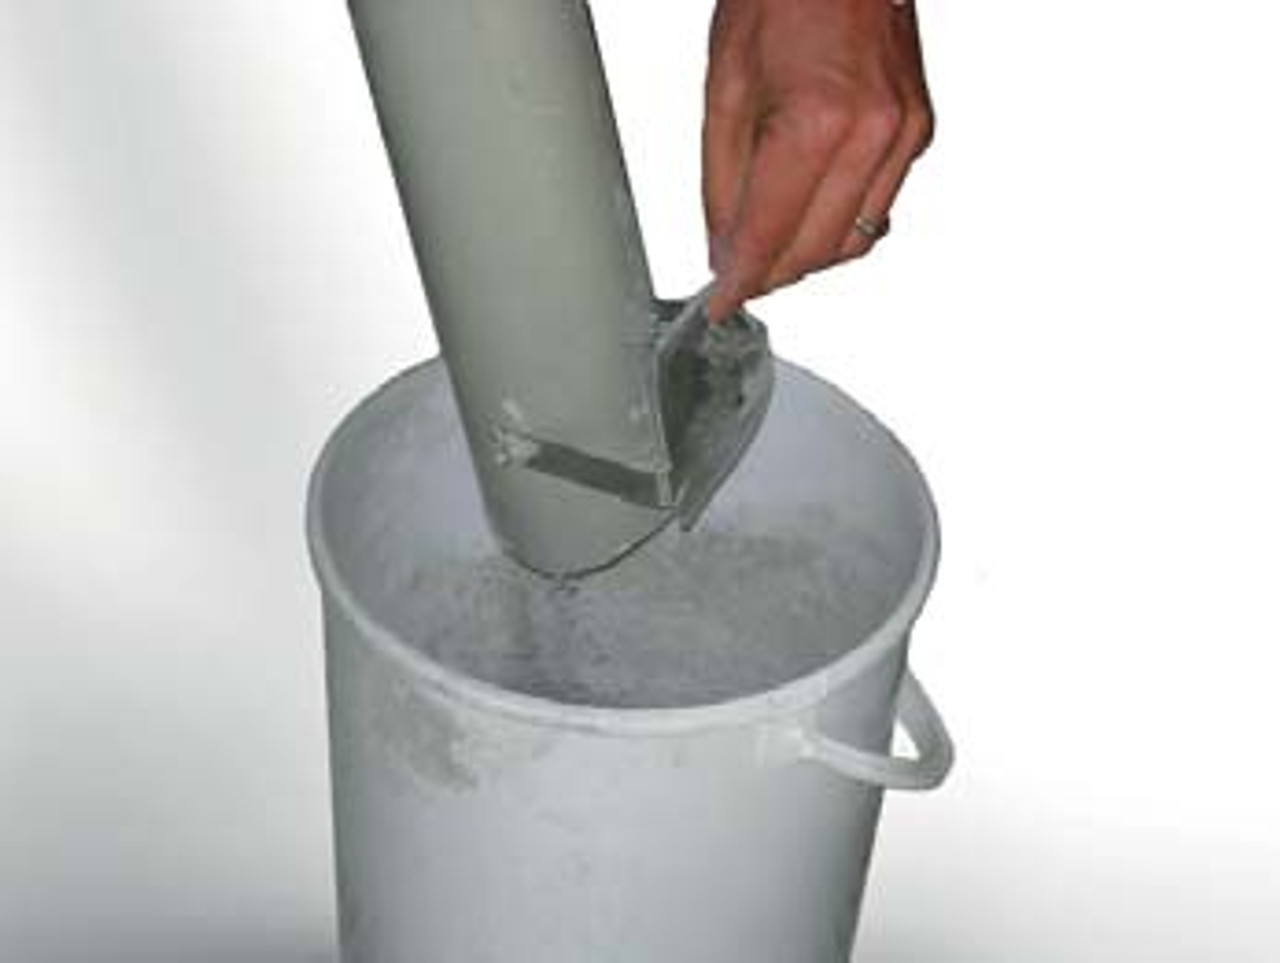 The cement sampler is suitable for free fl owing powders with a bulk weight of approximately 1 kg/liter.